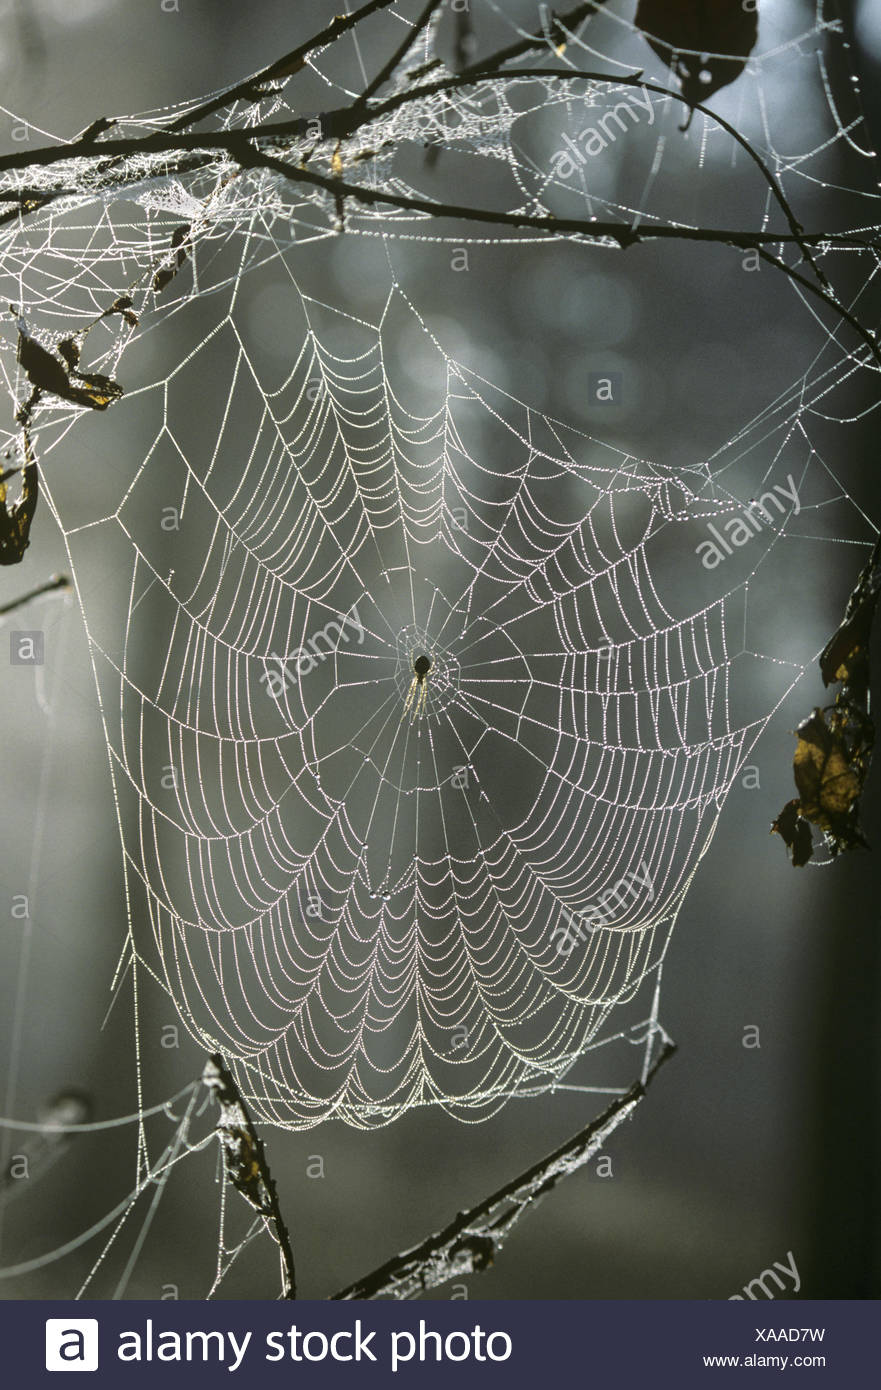 Orb Spider's web - Stock Image